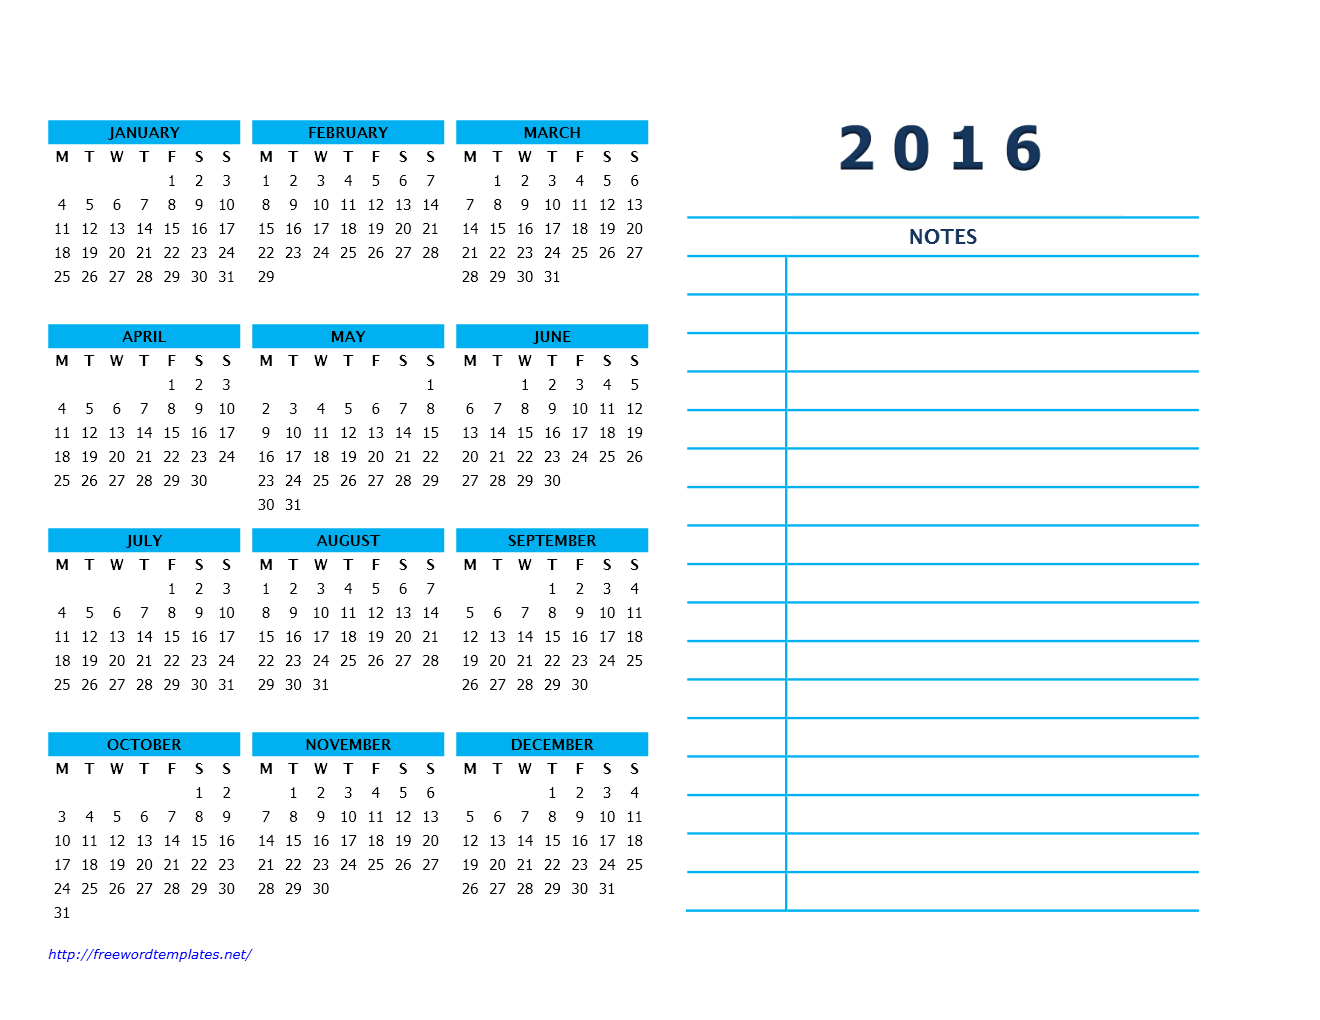 2016 Calendar Templates | Freewordtemplates.net